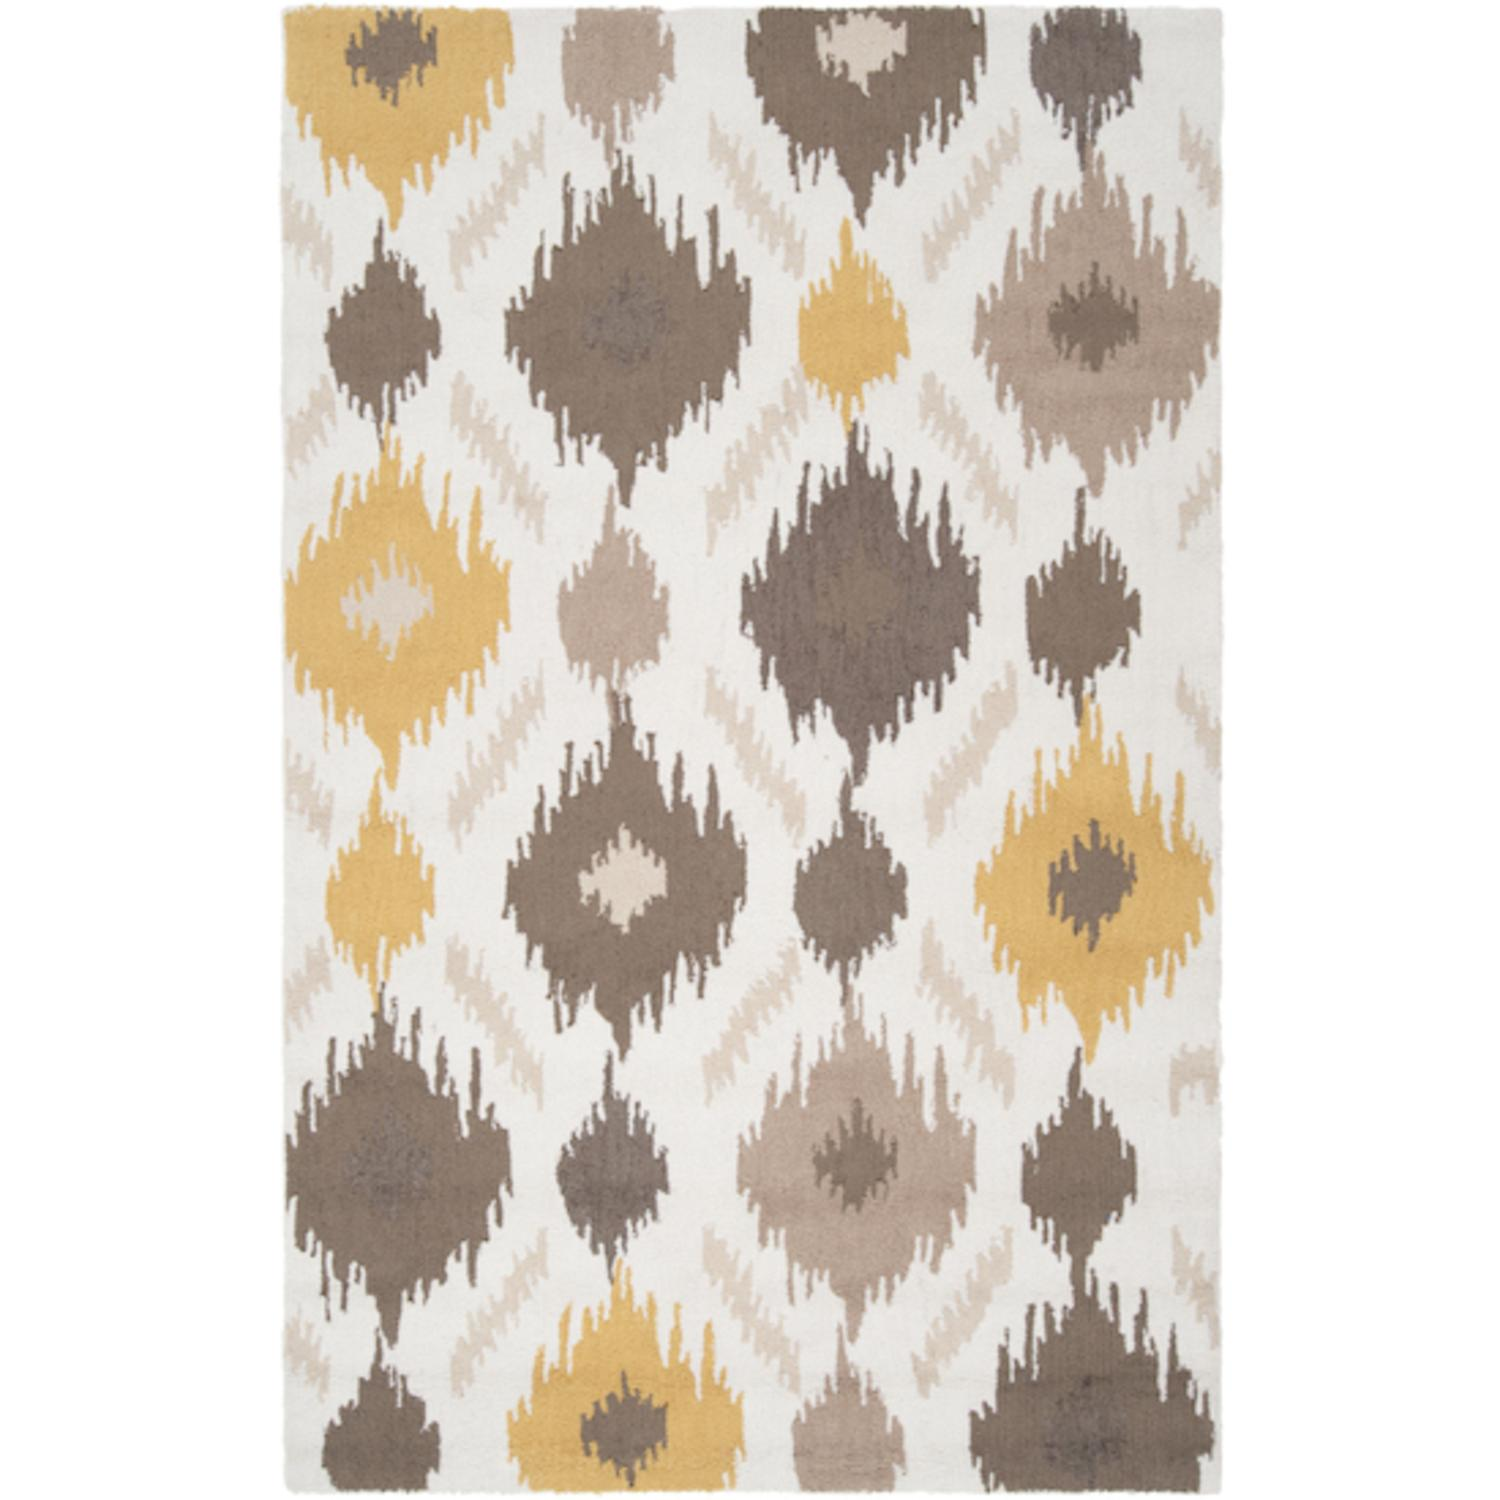 8' x 10' Amarillo Gold, Mushroom and Feather Gray Hand Hooked Area Throw Rug